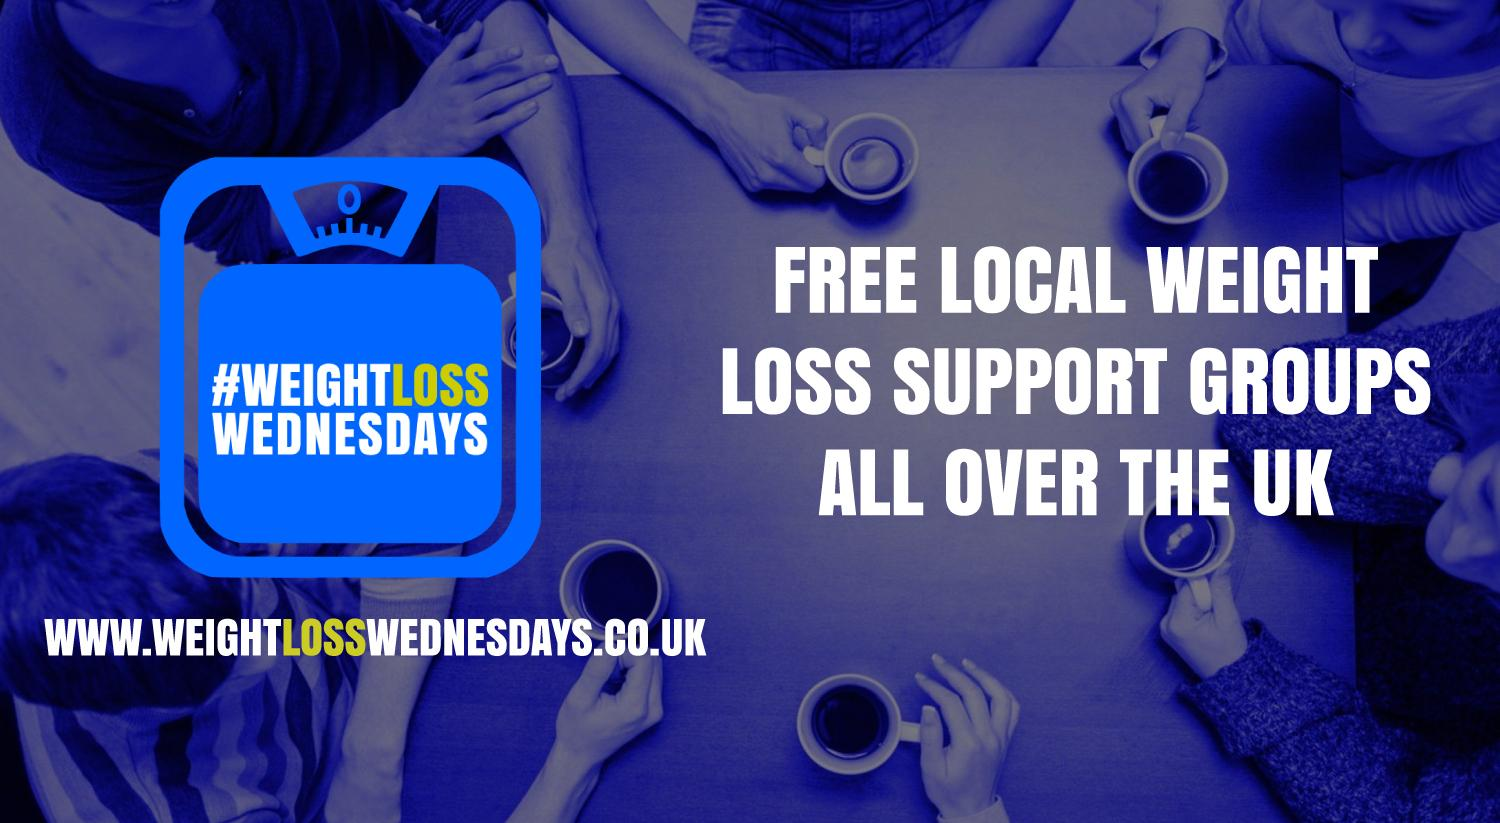 WEIGHT LOSS WEDNESDAYS! Free weekly support group in Henley-on-Thames